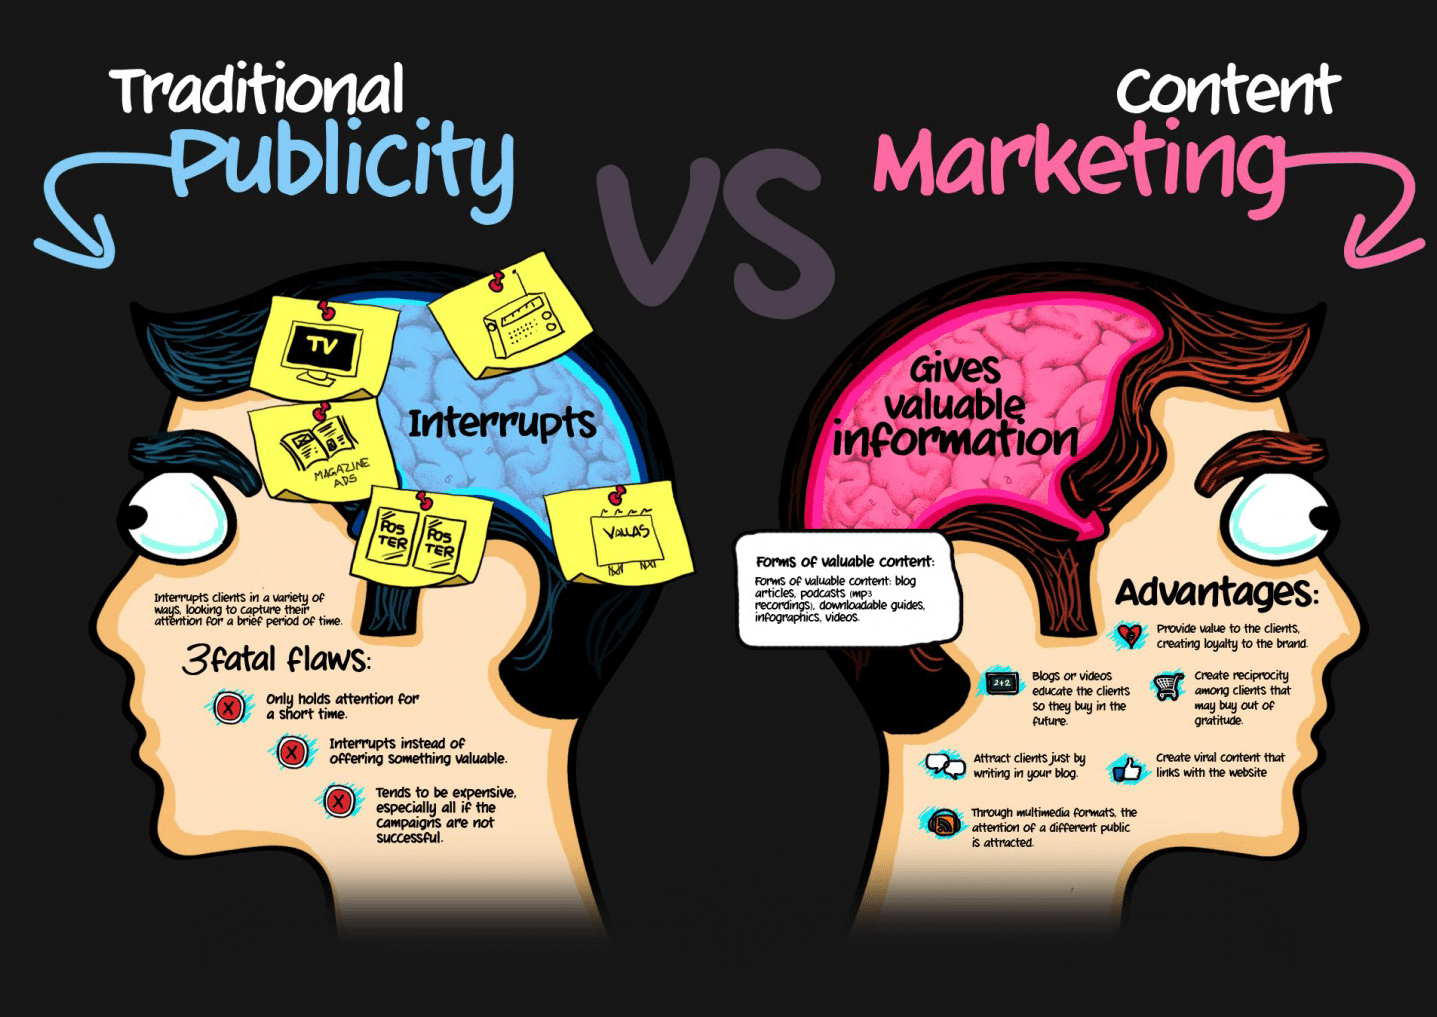 traditional-publicity-vs-content-marketing_w1500[1] (1)